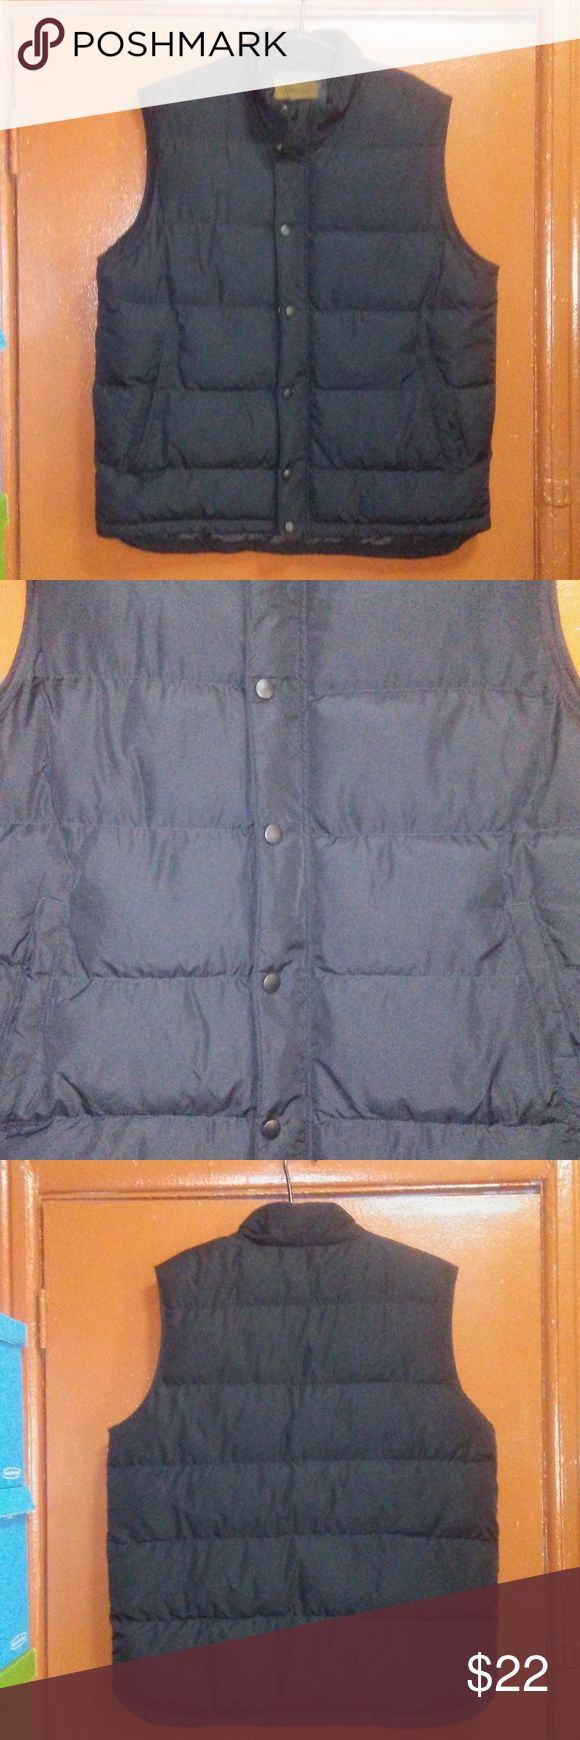 "St Johns Bay Puffer Vest Size Large Tall Mens St Johns Bay Puffer Vest Winter Black Big & Tall Size Large Tall LT Measurements: Pit to Pit 25"" Length 32"" Condition: Pre-owned - Great Condition St. John's Bay Jackets & Coats Puffers"